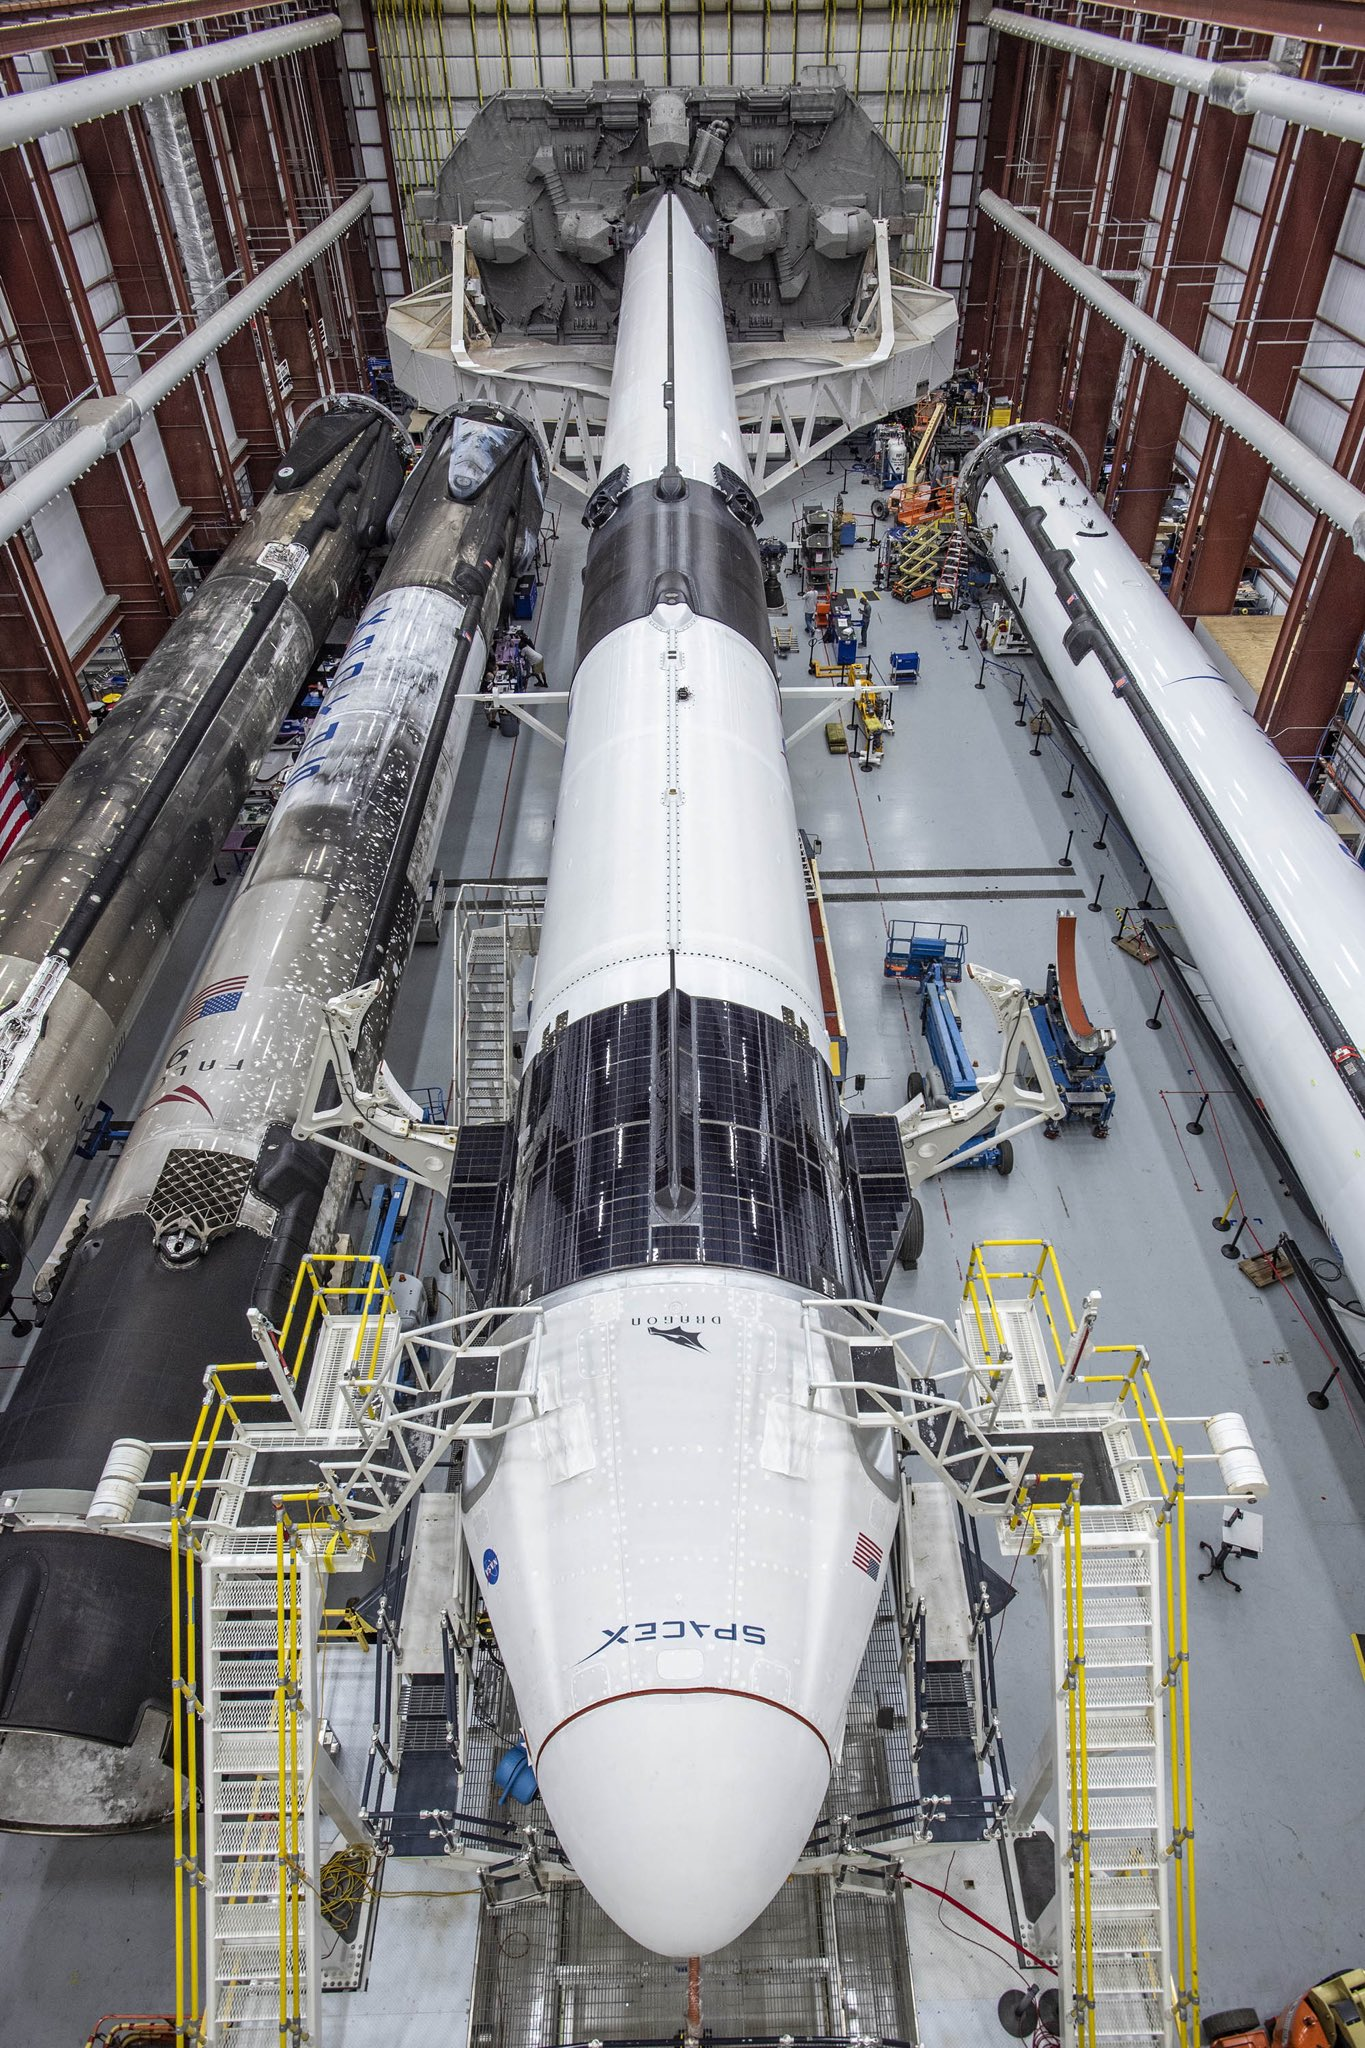 [SpaceX] Stock de premiers étages - Page 3 EYgh5jaWsAEBant?format=jpg&name=large